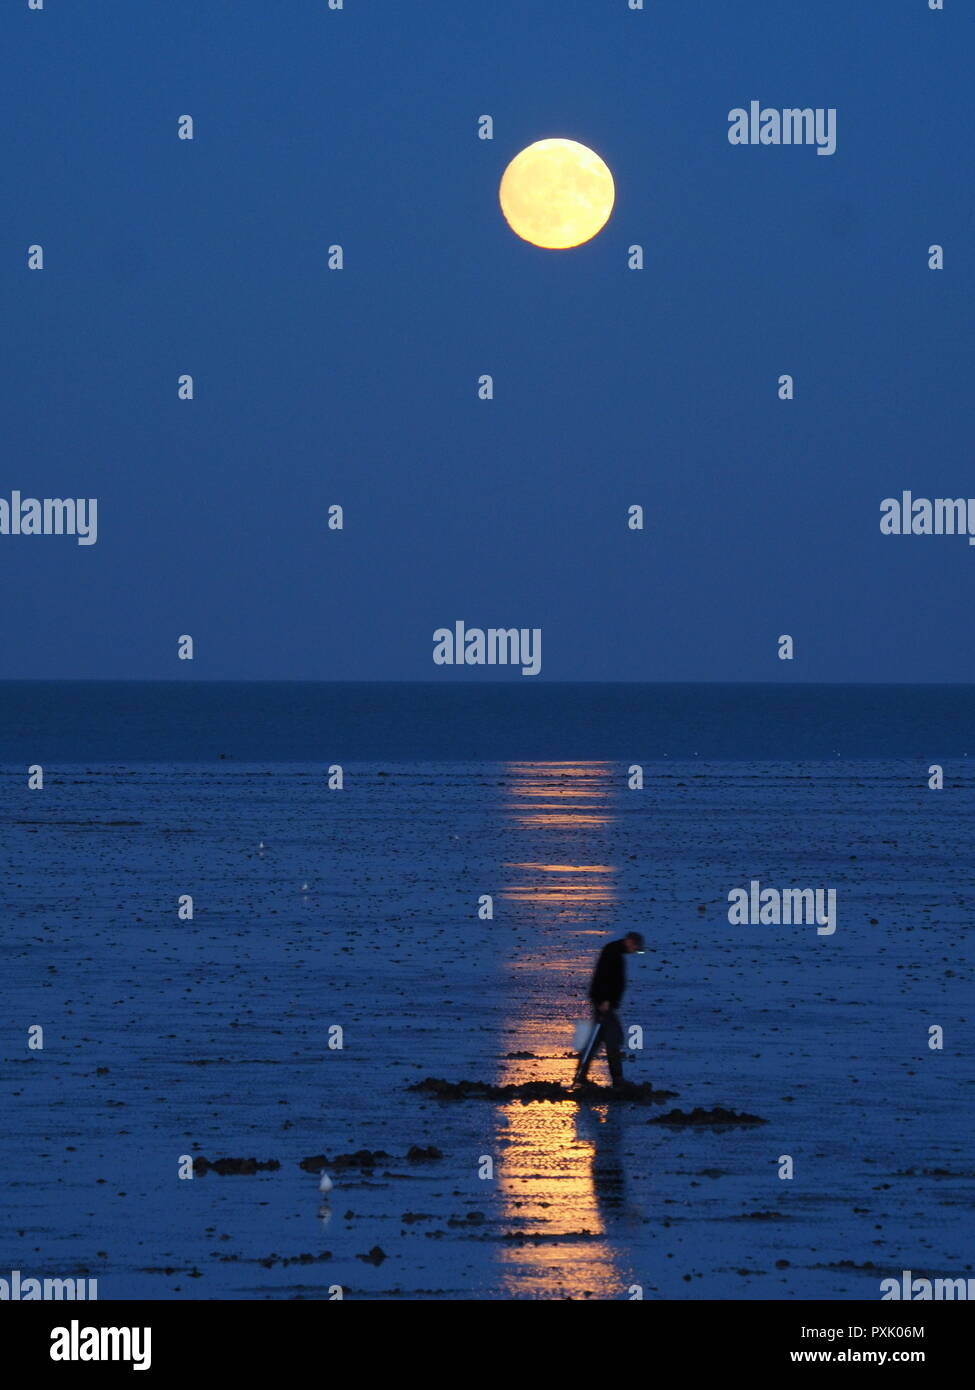 Minster on sea, Kent, UK.  23rd Oct, 2018. UK Weather: this evening's almost full moon rising in Minster on sea, Kent. Credit: James Bell/Alamy Live News - Stock Image